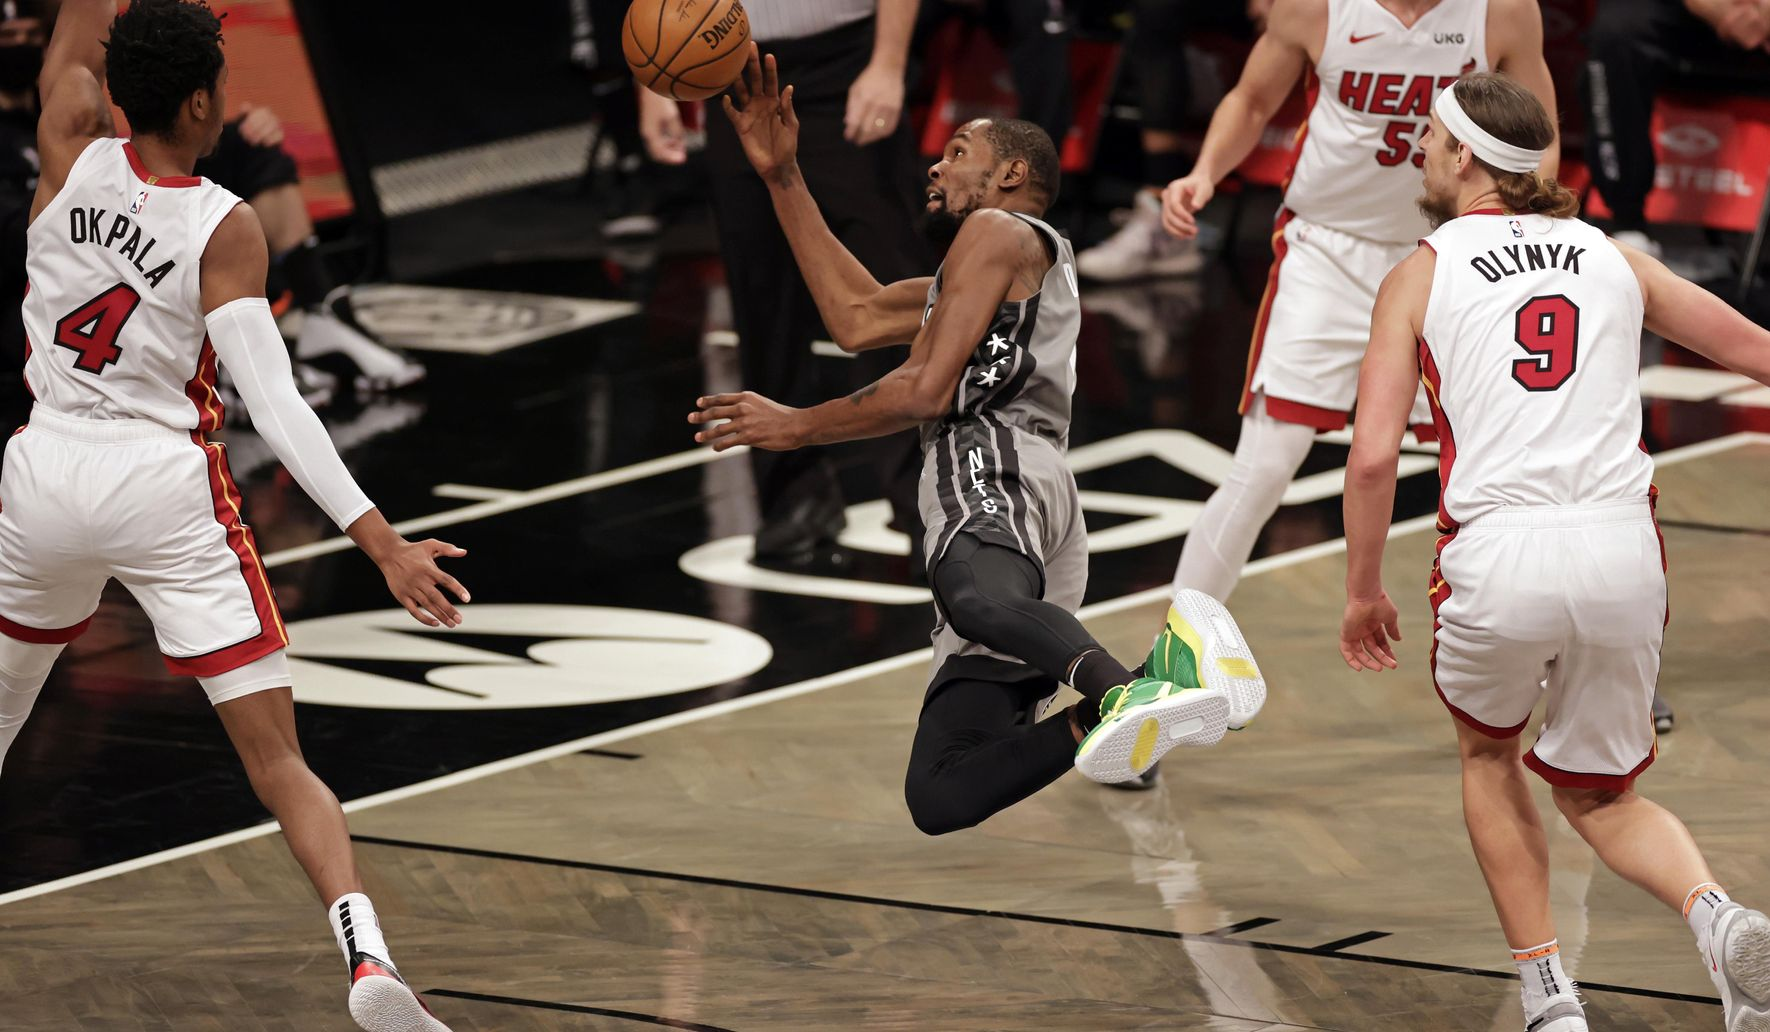 Heat_nets_basketball_94456_c0-212-5076-3171_s1770x1032